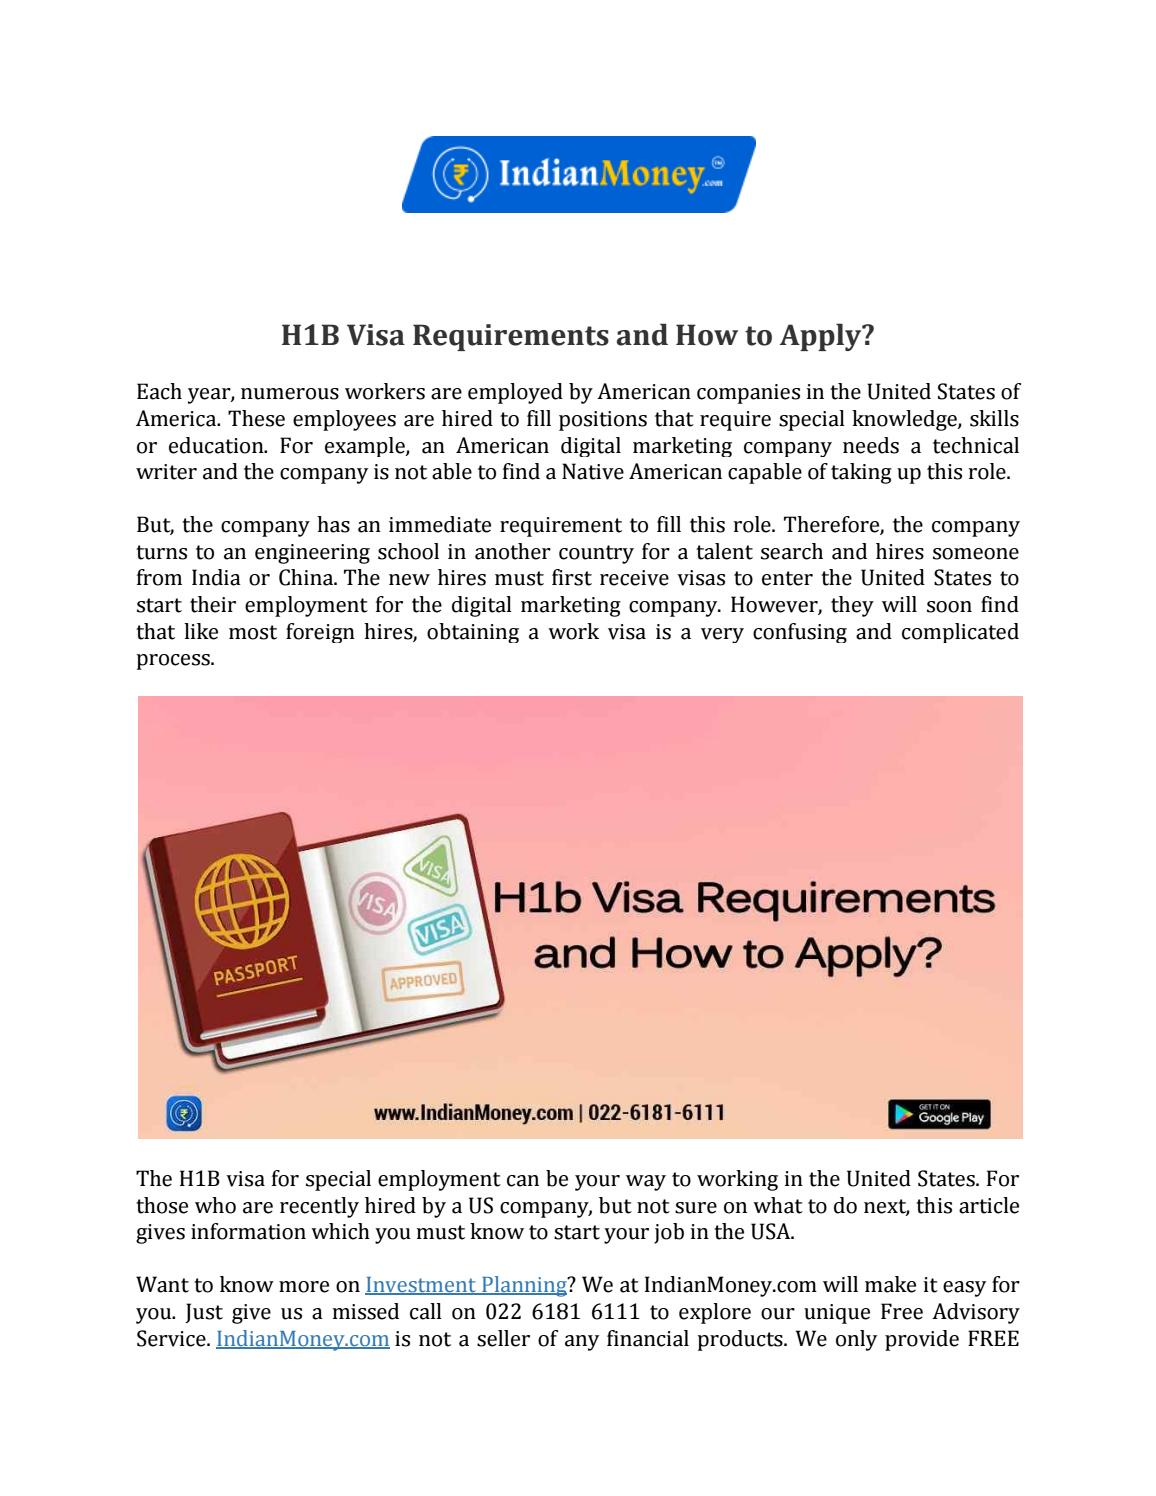 H1B Visa Requirements and How to Apply? by bhaskarnitish007